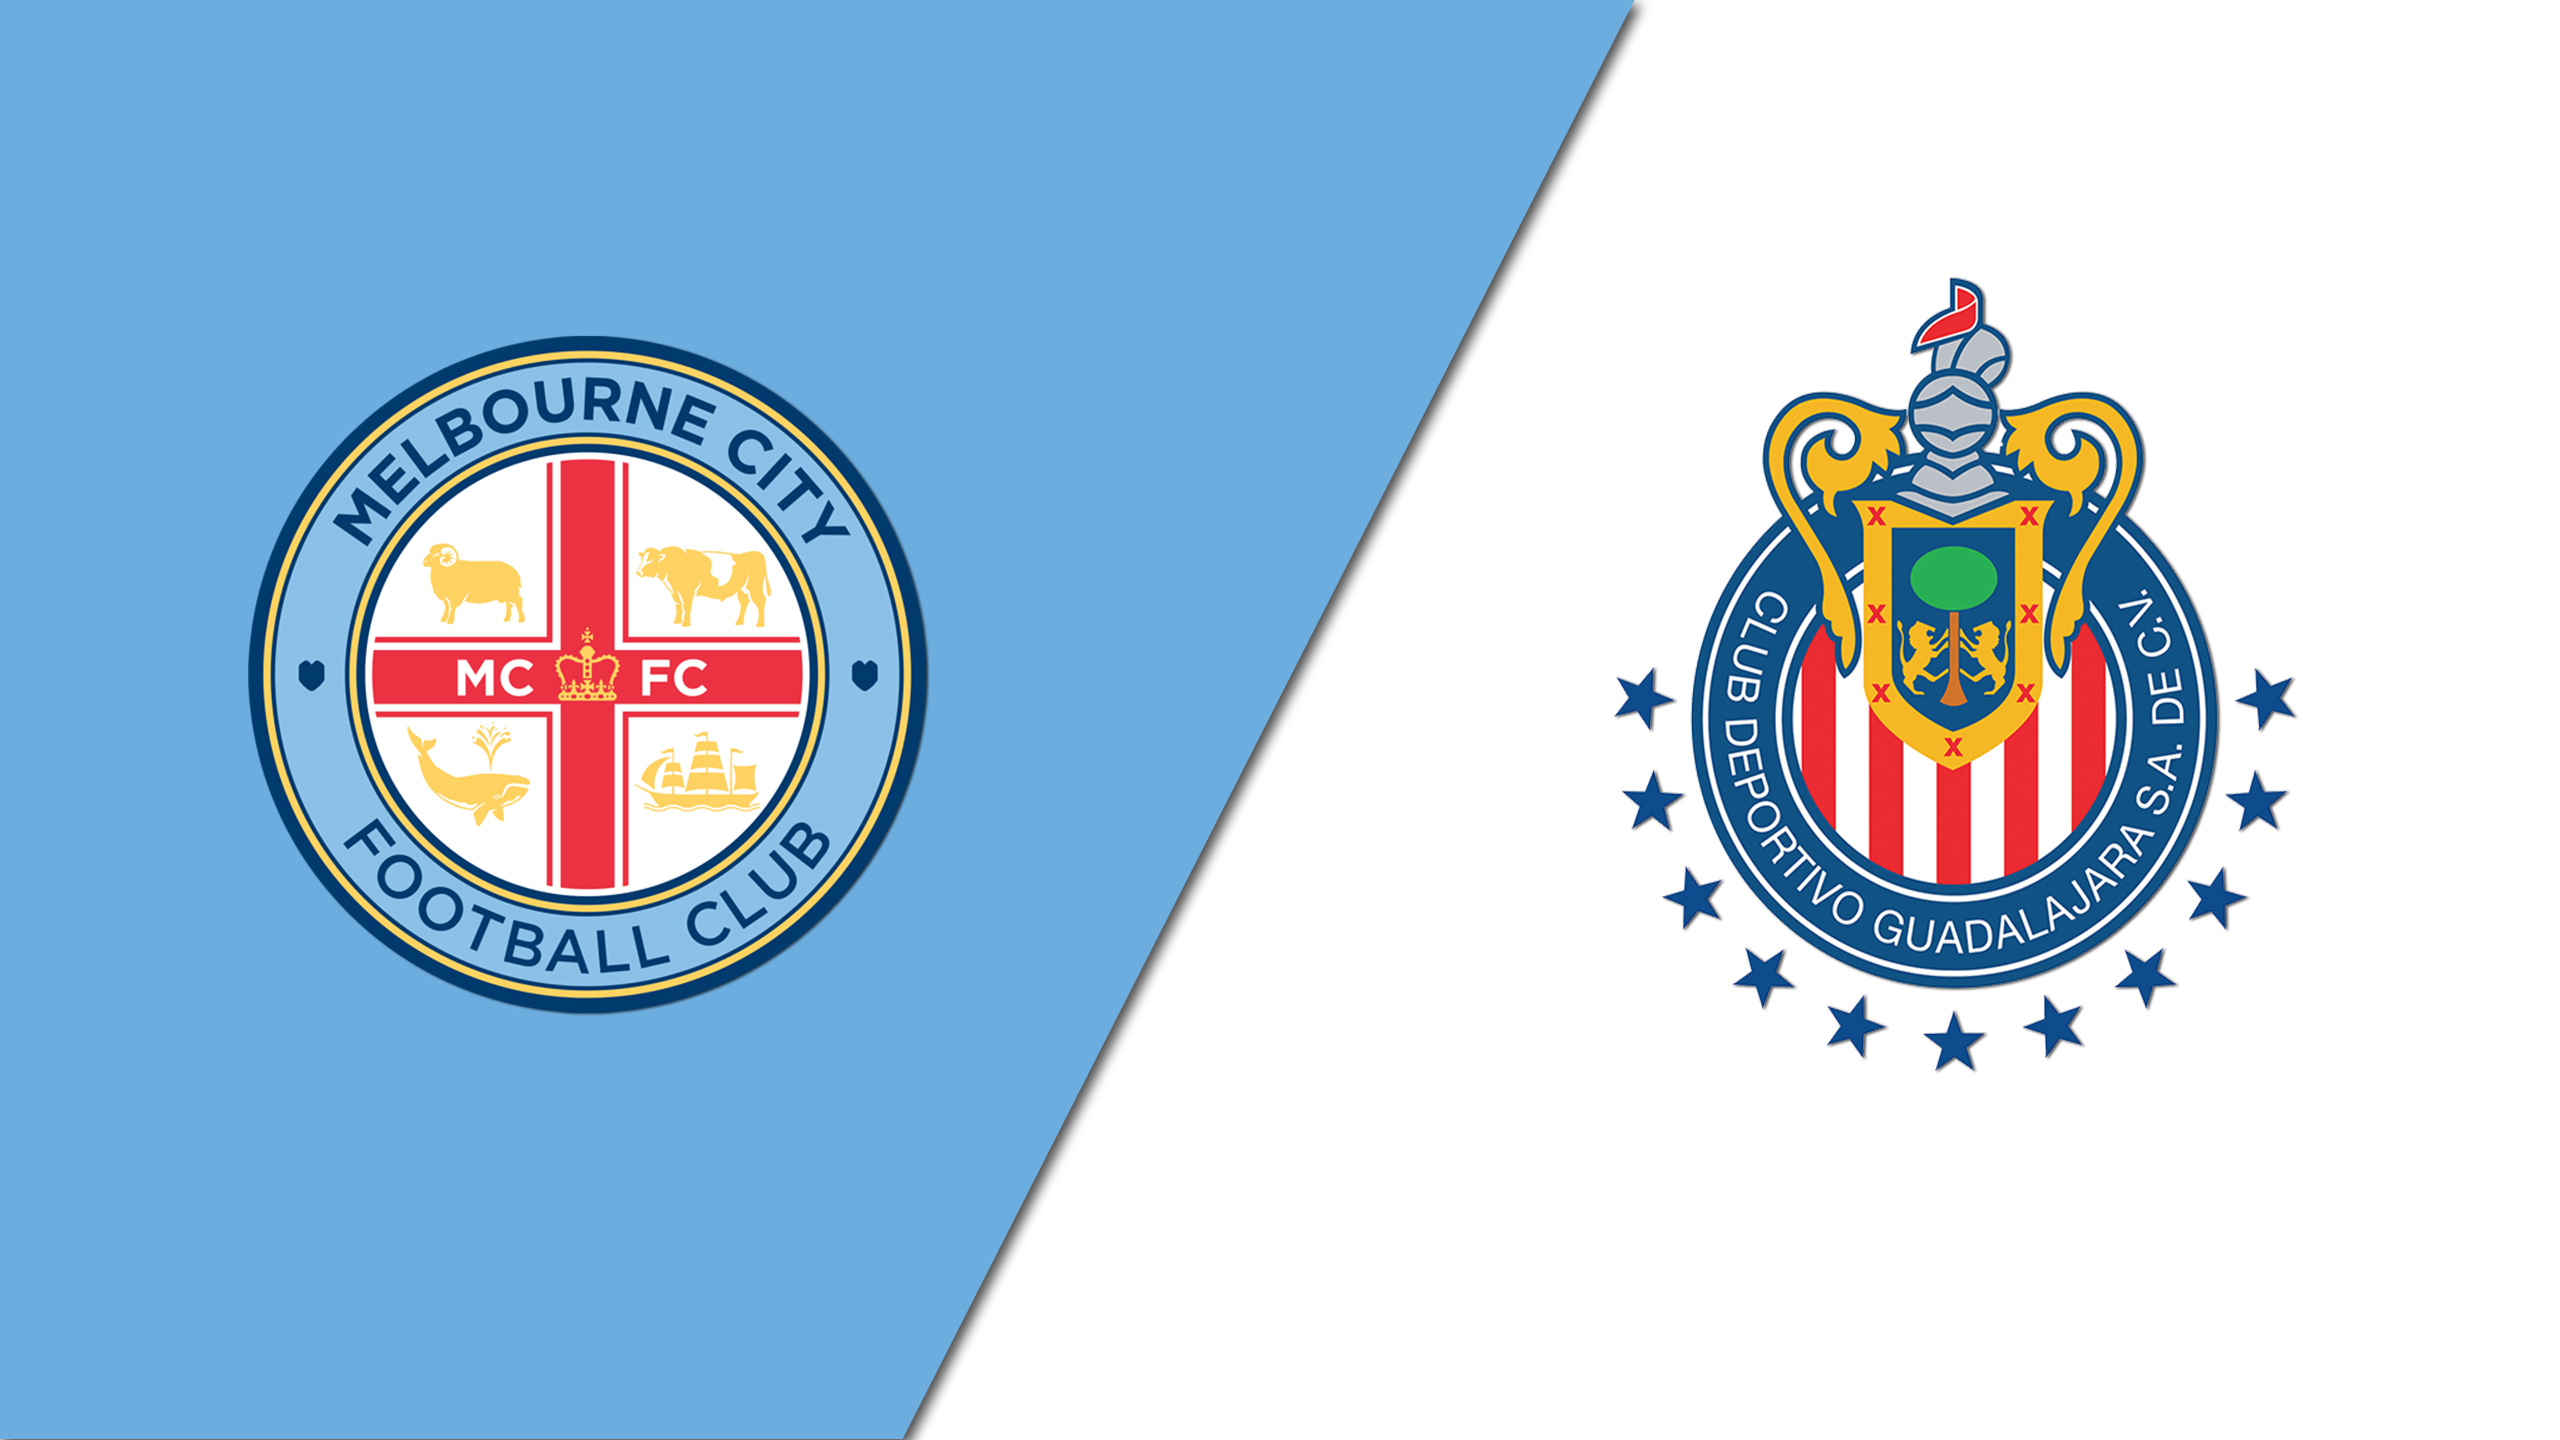 Melbourne City FC Under-14 vs. Chivas de Guadalajara Under-14